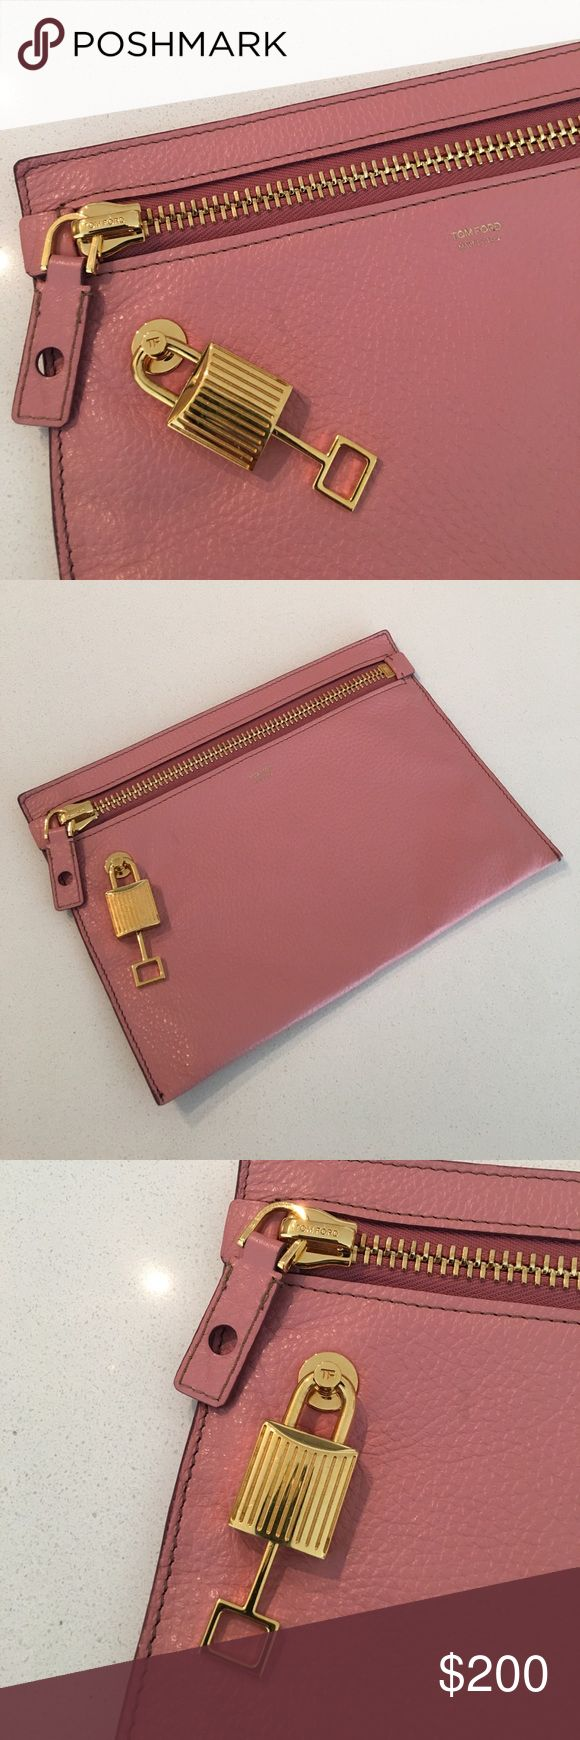 Tom Ford Millennial Pink Clutch This is a pre-owned item. This clutch is gorgeous and in near perfect condition. The key is stuck in lock, however any Tom Ford boutique can fix this for you if it bothers you. Doesn't bother me personally. Authentic item. Was purchased at Last Call Neiman Marcus. Does not come with original dust bag or receipt. It's a great size for evenings out, I just do not use it so hopefully it finds a good home! Will ship same or next business day. Tom Ford Bags…